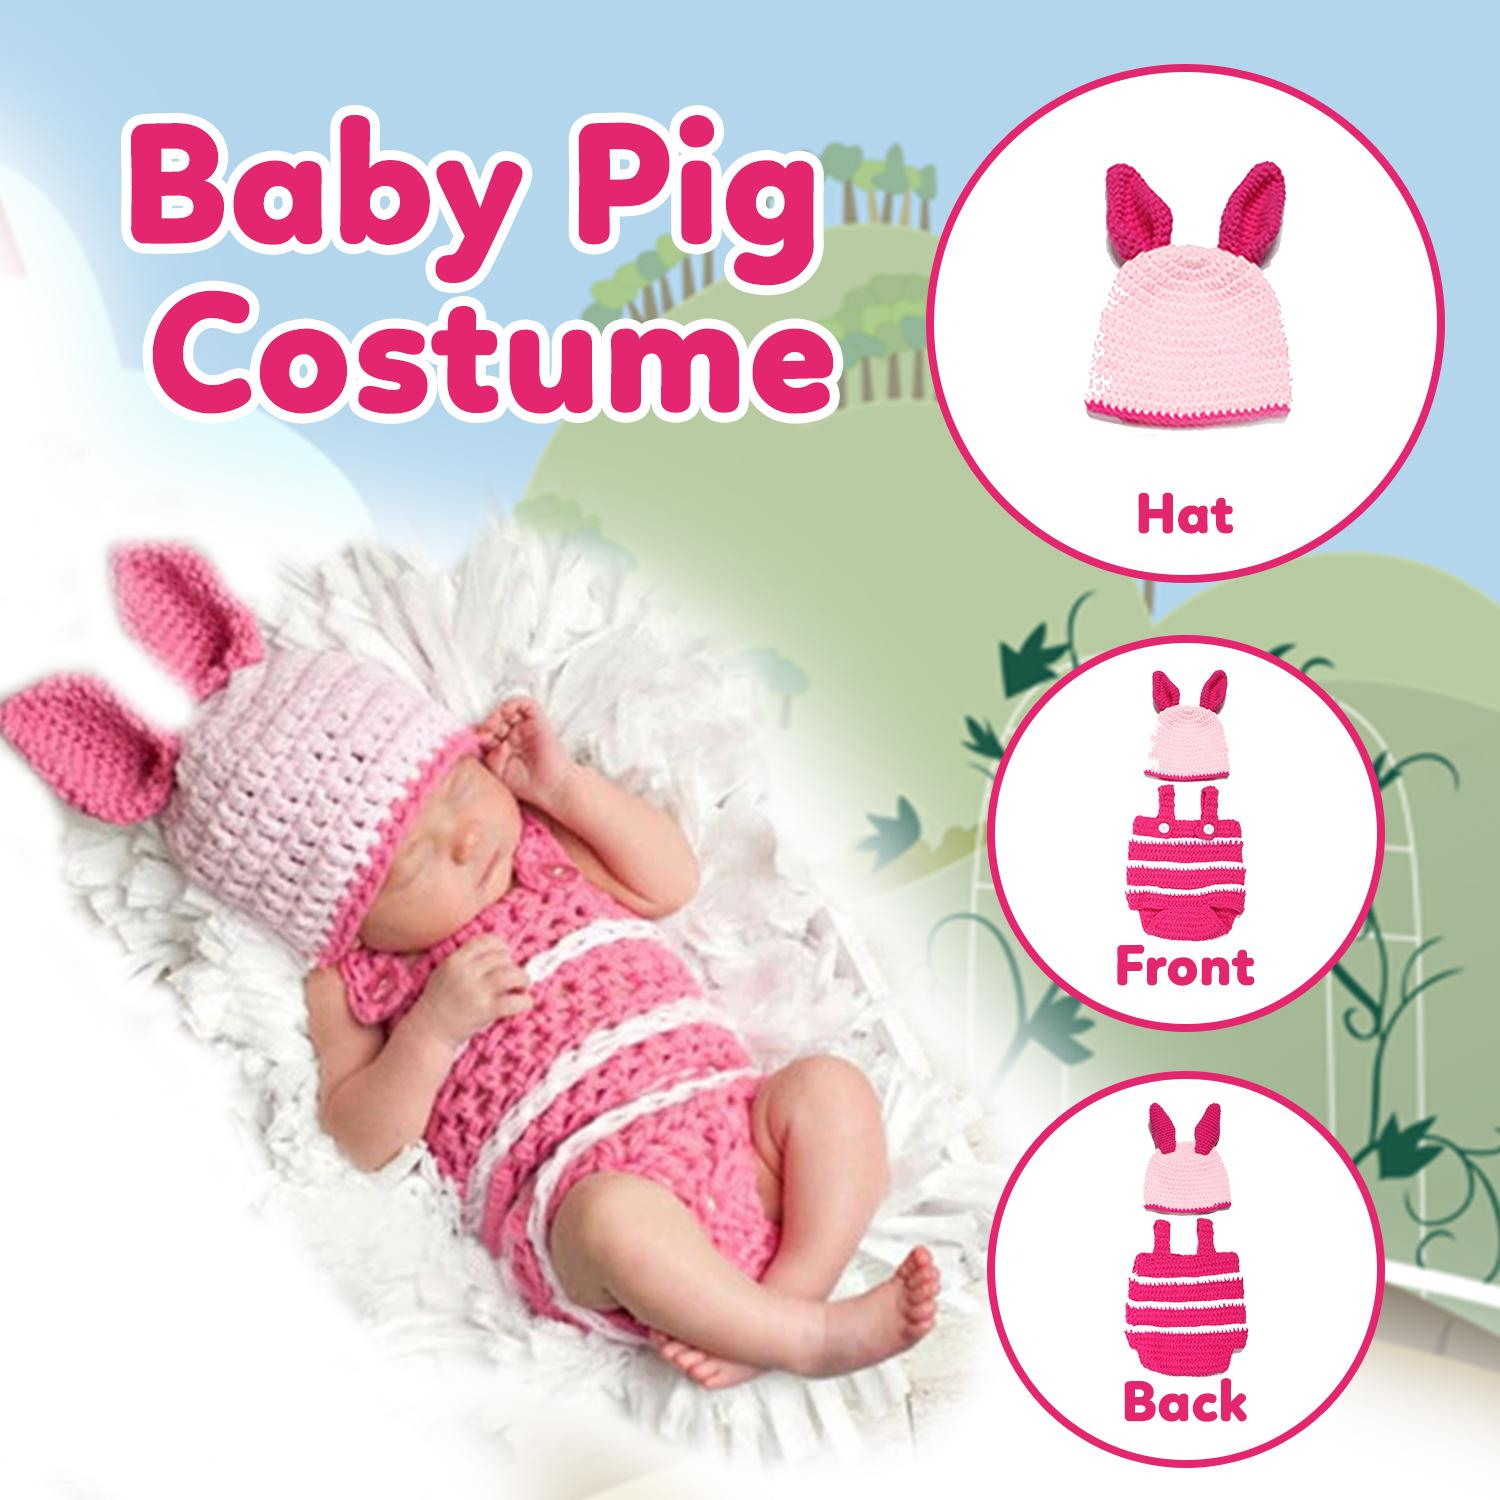 ab23361b8164e Baby Crochet Pink Pig Animal Costume Cosplay Clothing Sets Hand-Knitted  Newborn Handmade Toddler Infant Baby Boys and Girls Knitting Cute Props ...